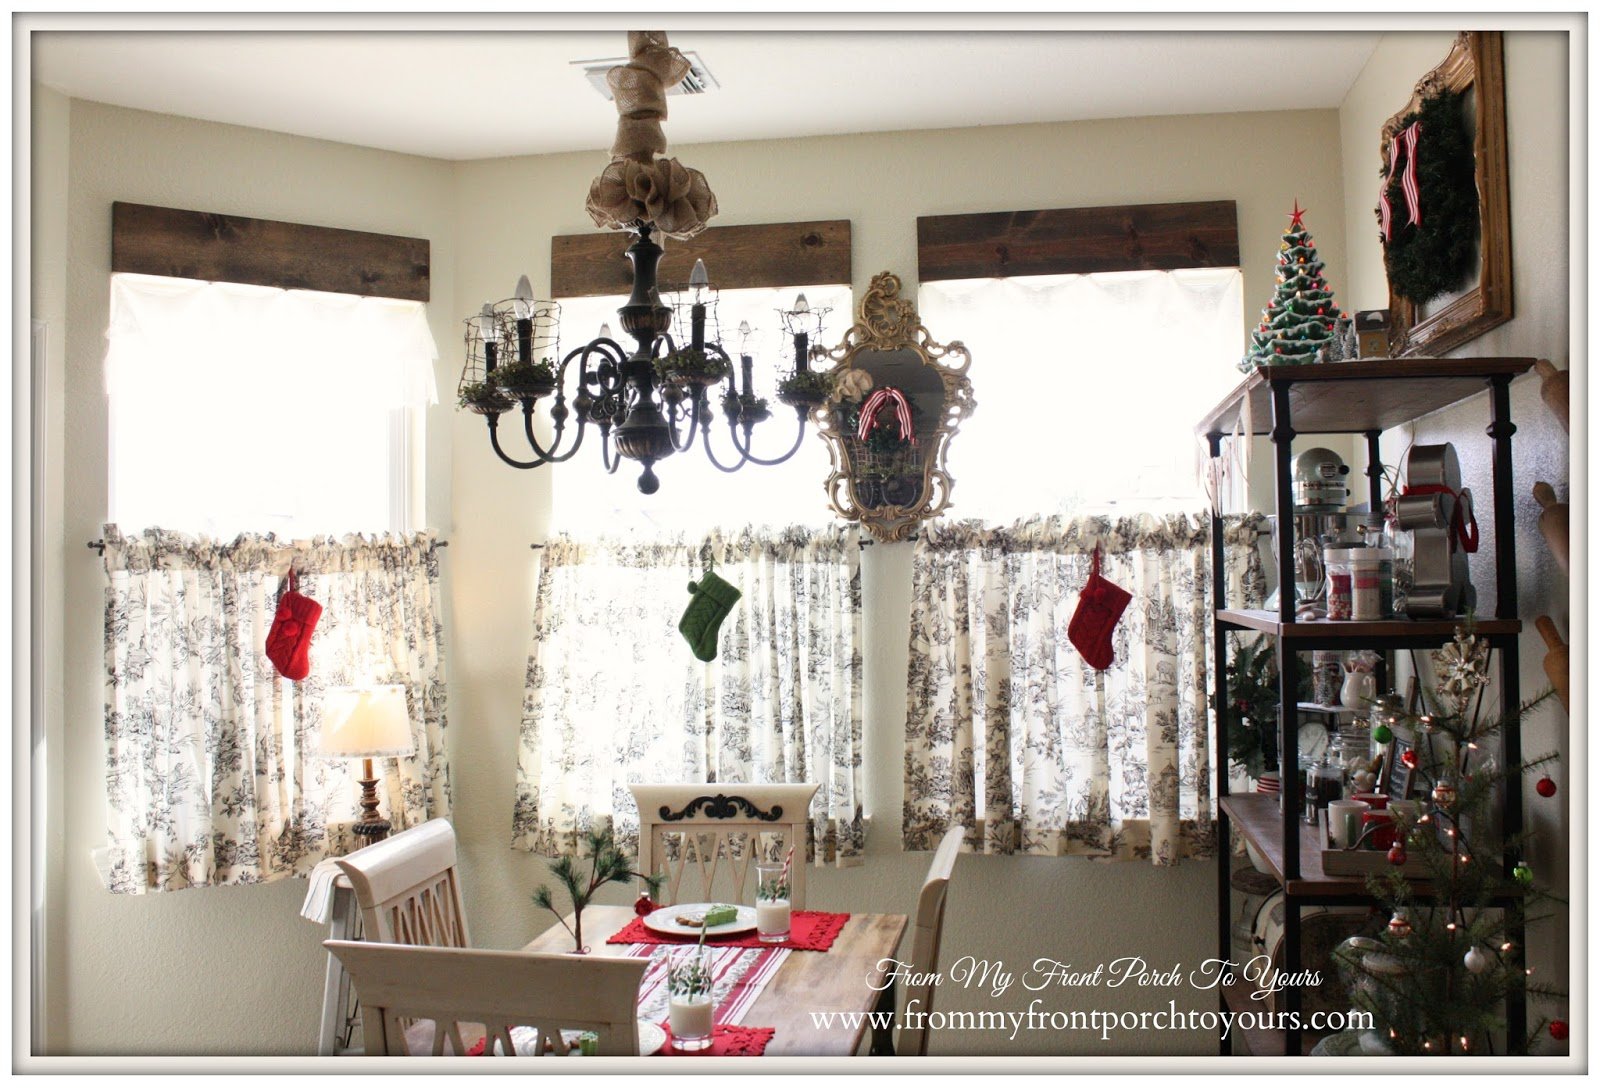 Christmas Stockings hanging from window-French Farmhouse Christmas Kitchen- From My Front Porch To Yours